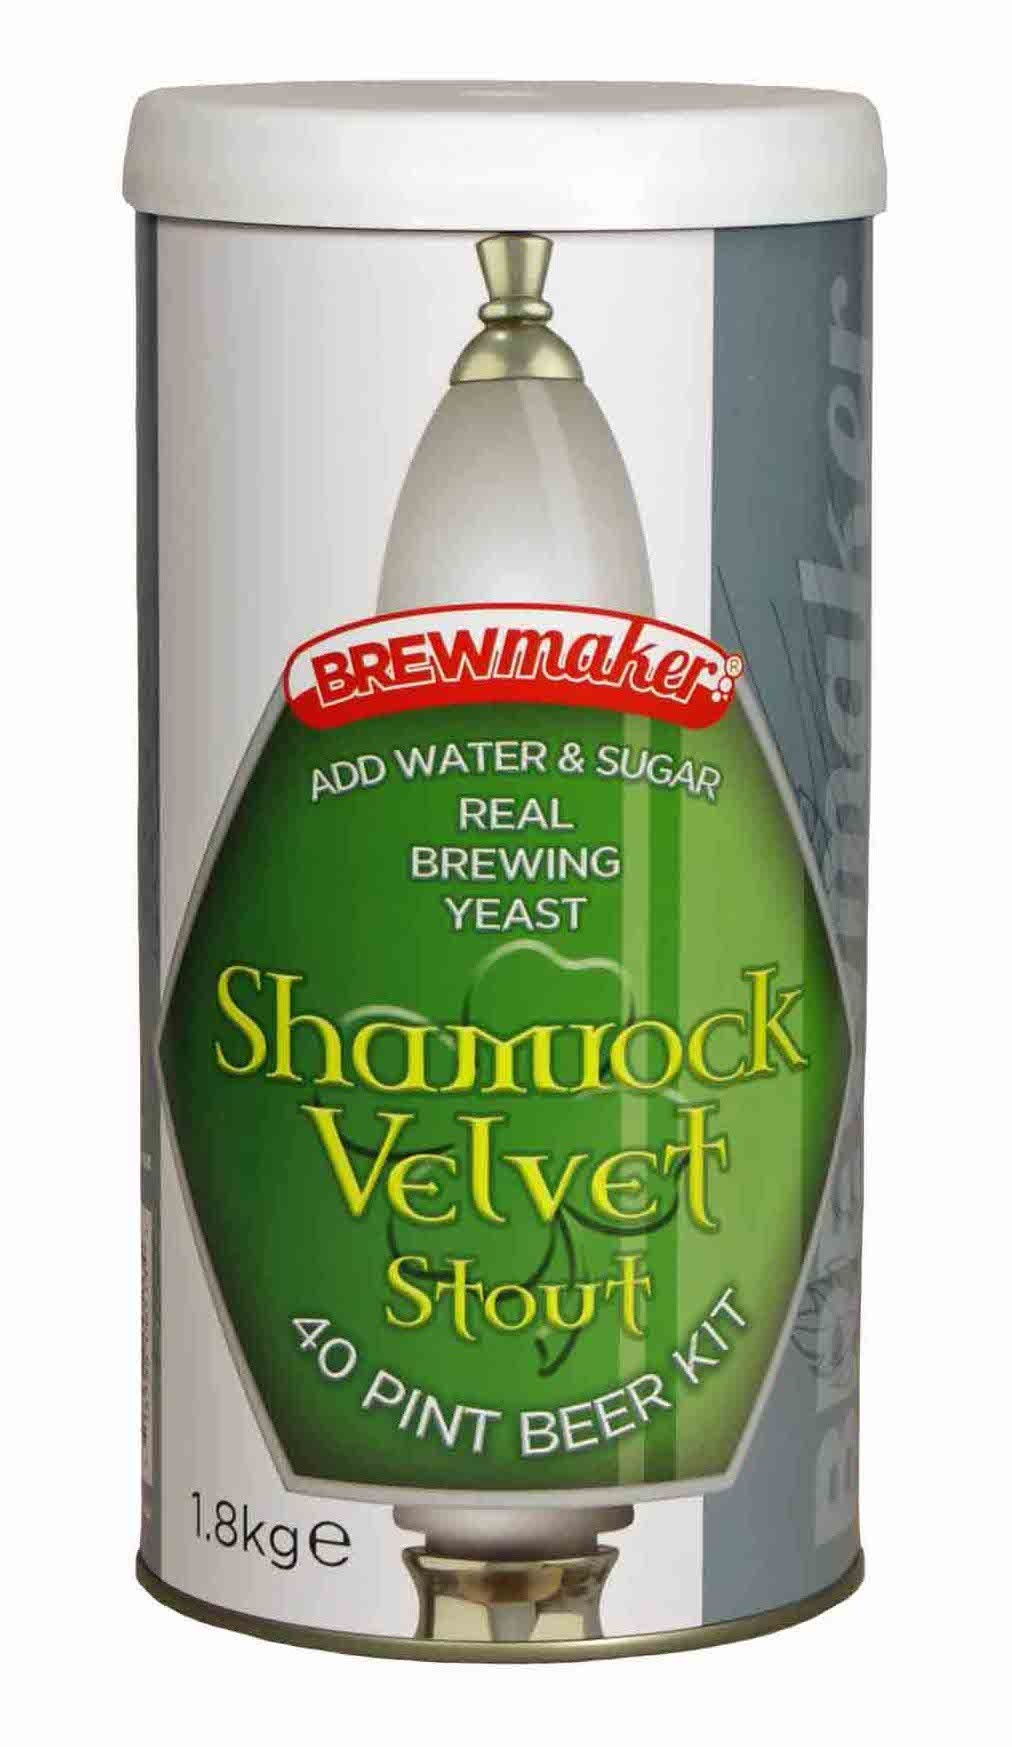 Brewmaker Irish Velvet Stout 1.8KG